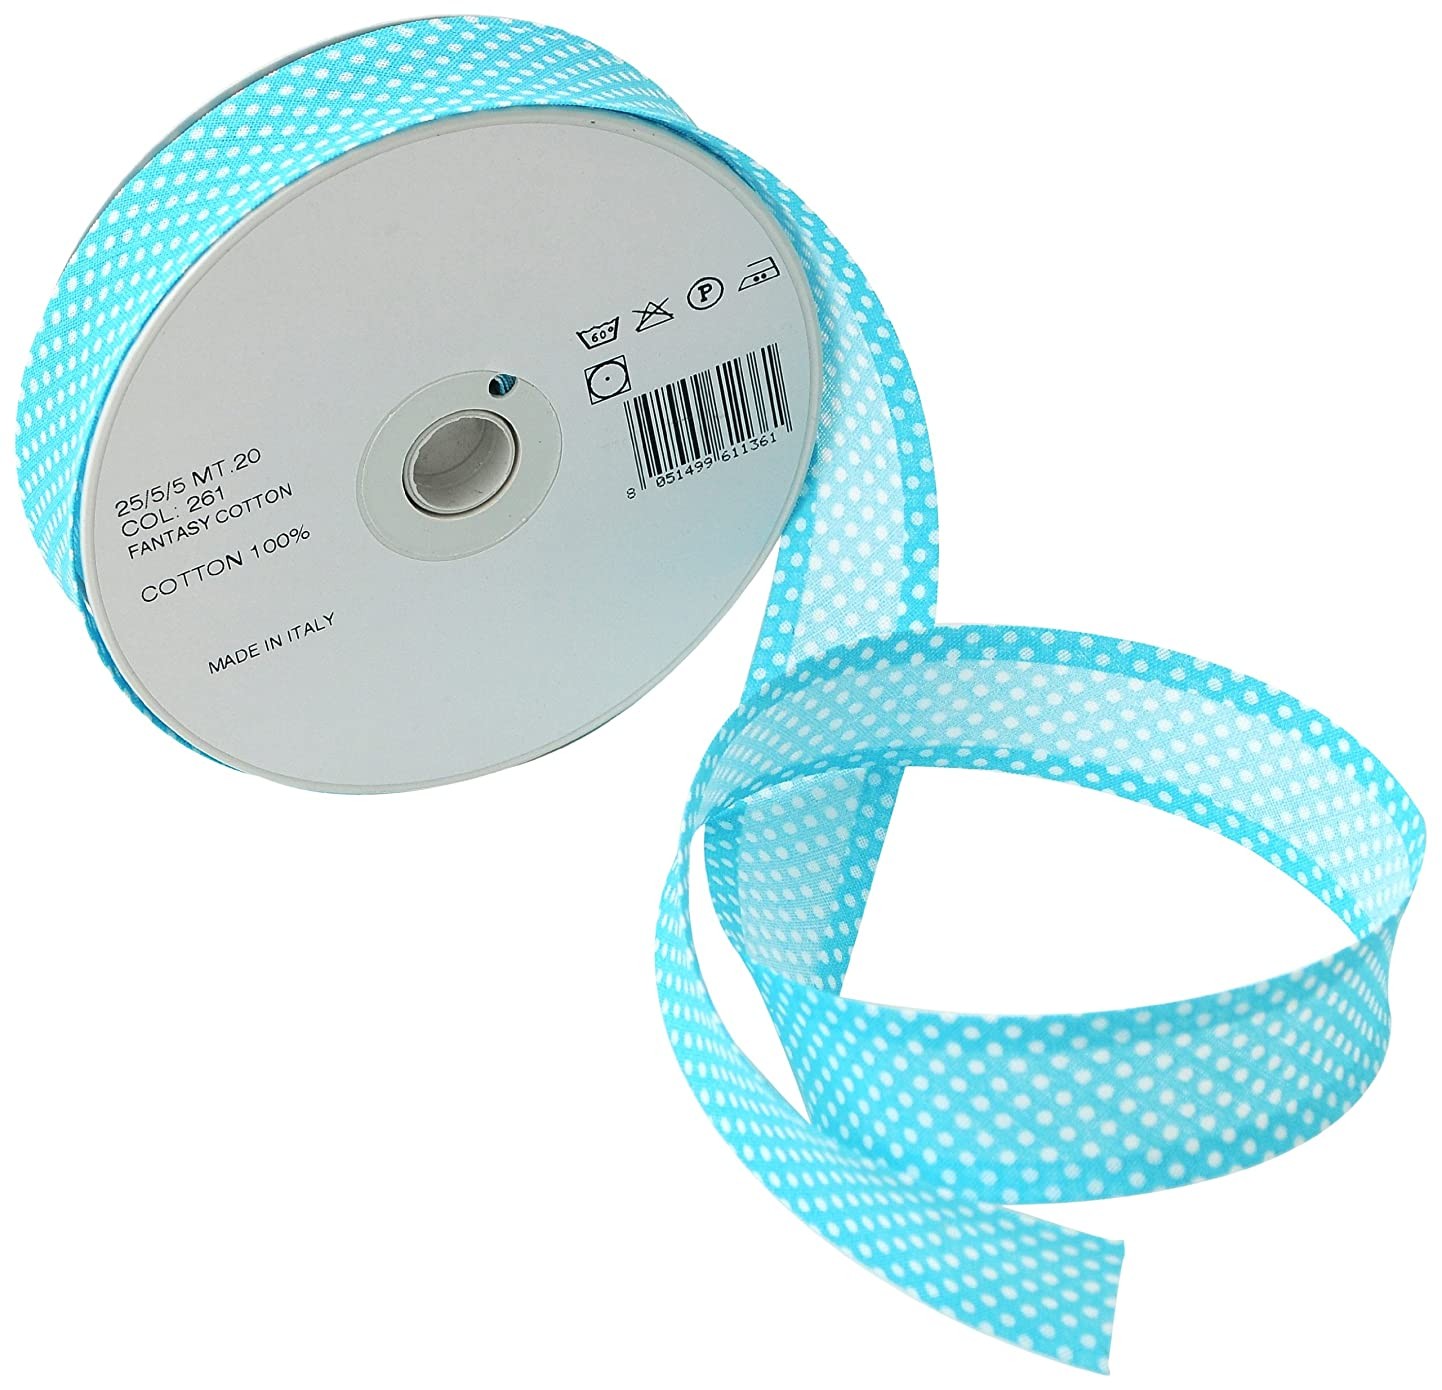 Inastri 25/ 5/ 5 mm Cotton Bias Binding in Turquoise Polka White 261 cmbzrppknwr3